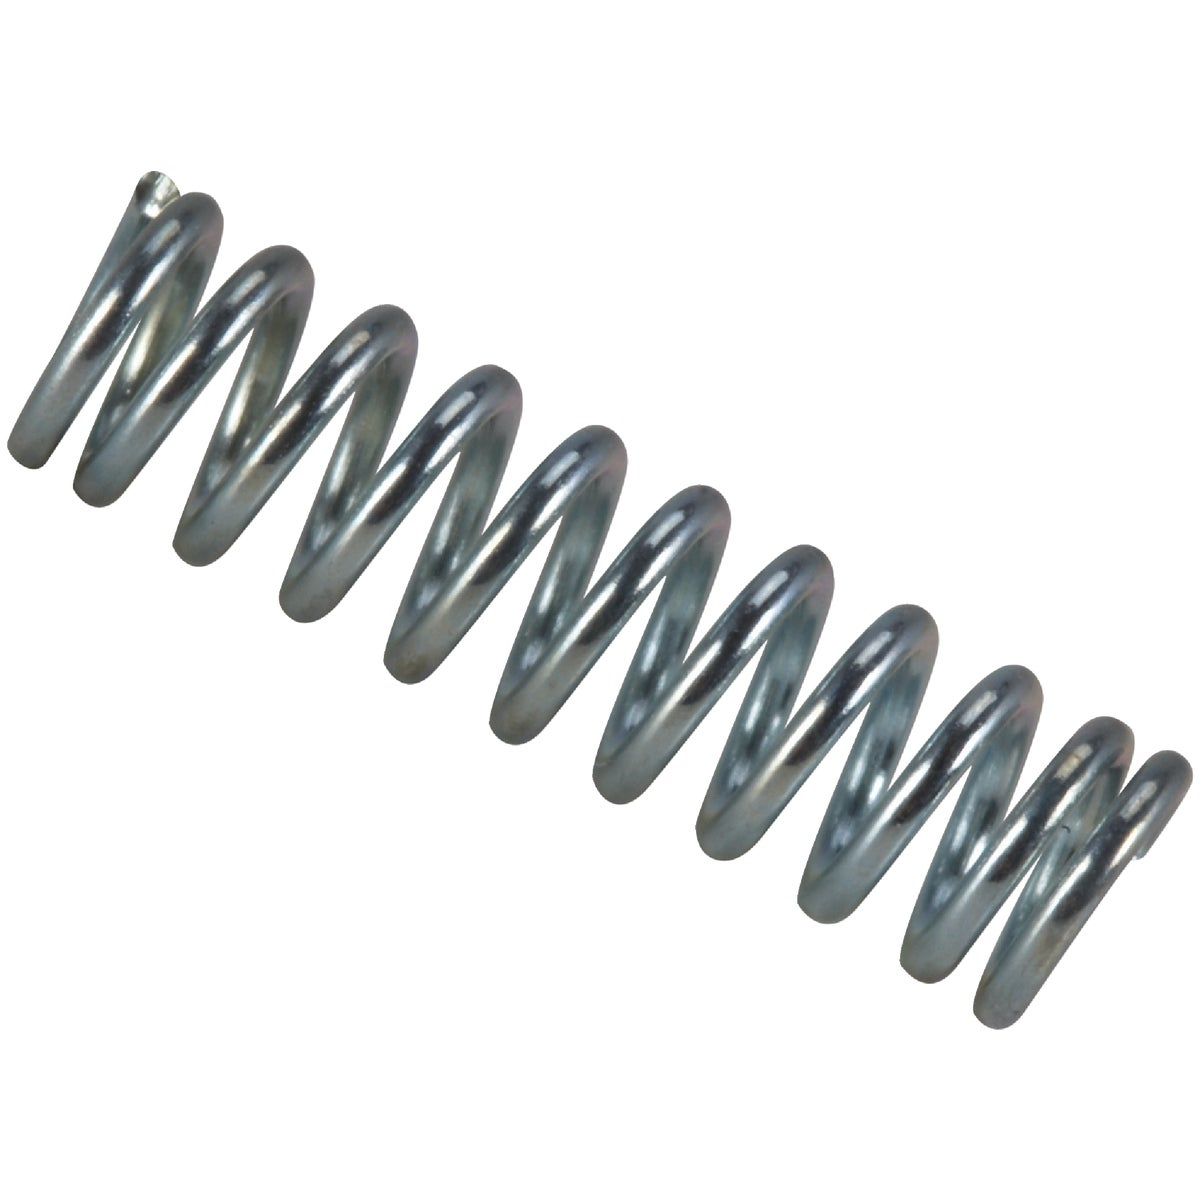 COMPRESSION SPRING - C-826 by Century Spring Corp